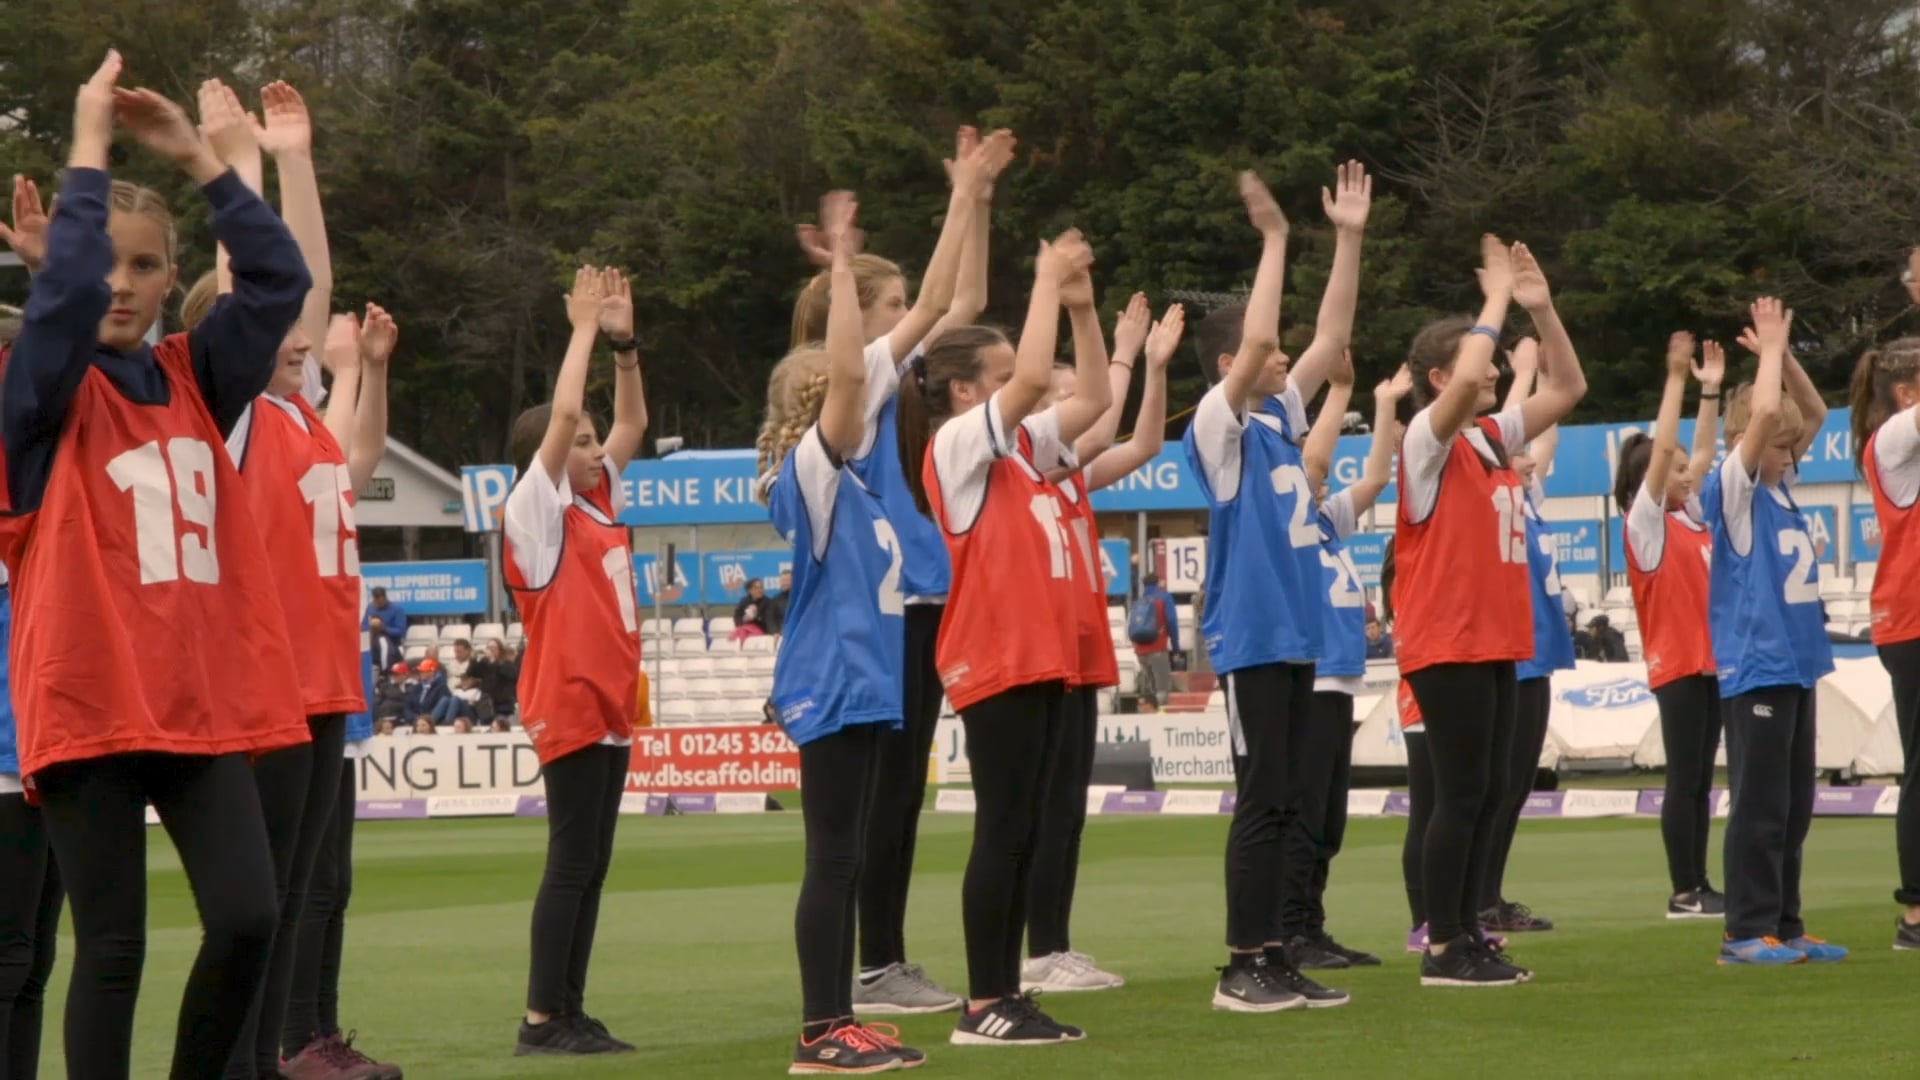 1 Day 1 Dance 1000 Dancers World Cup Fever at the Essex County Cricket Ground